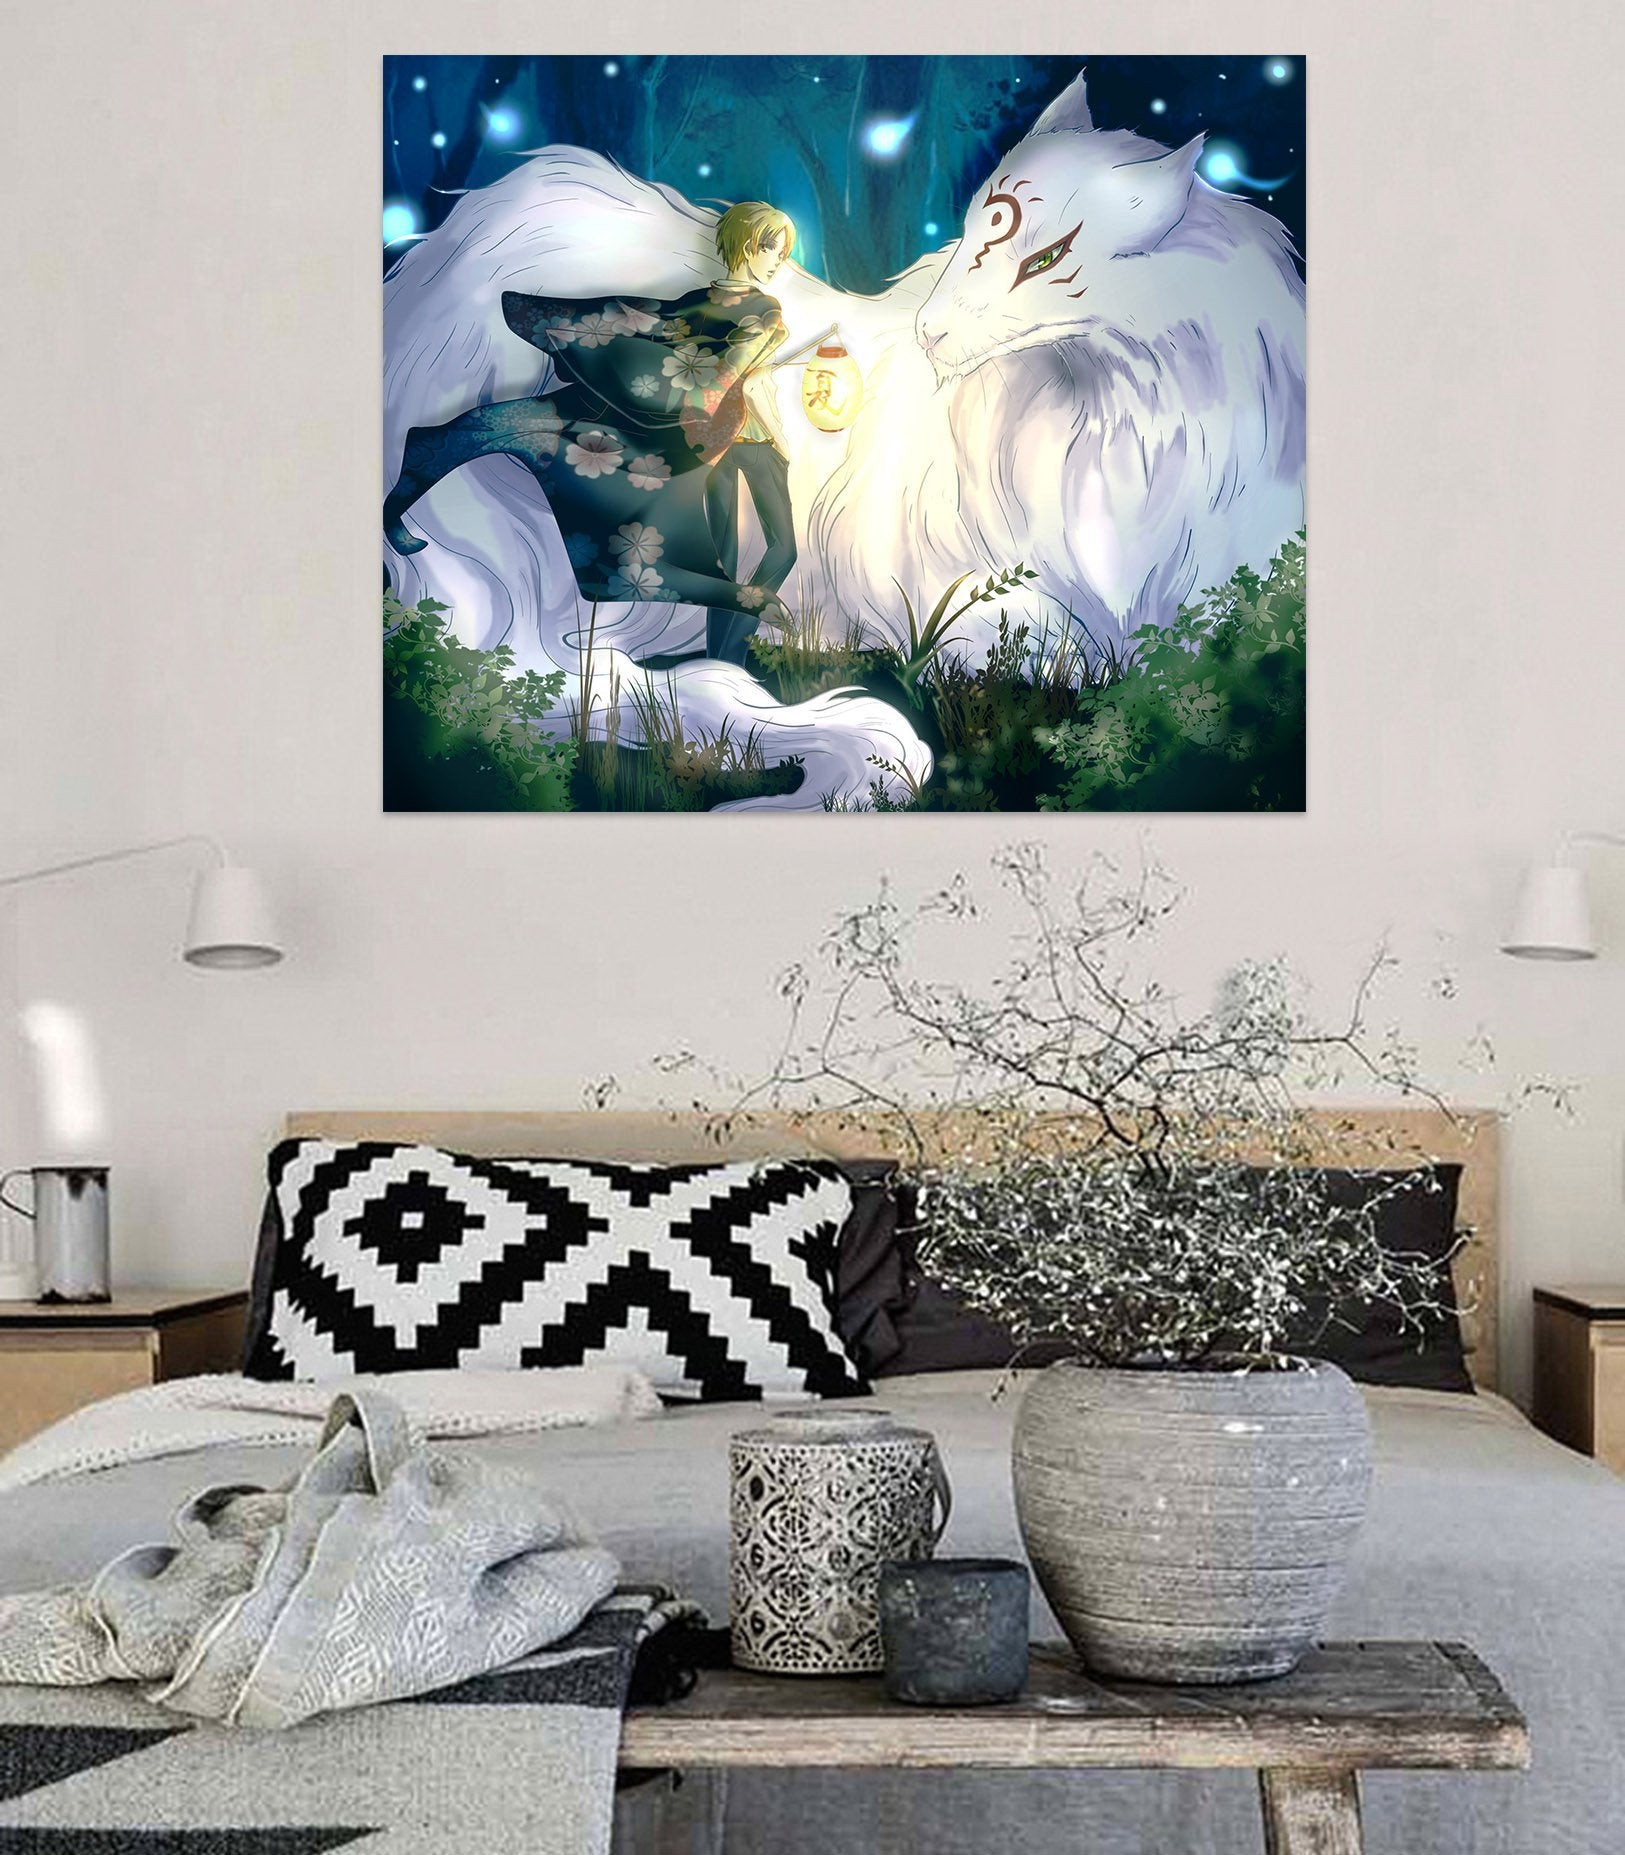 3D Natsume 371 Anime Wall Stickers Wallpaper AJ Wallpaper 2